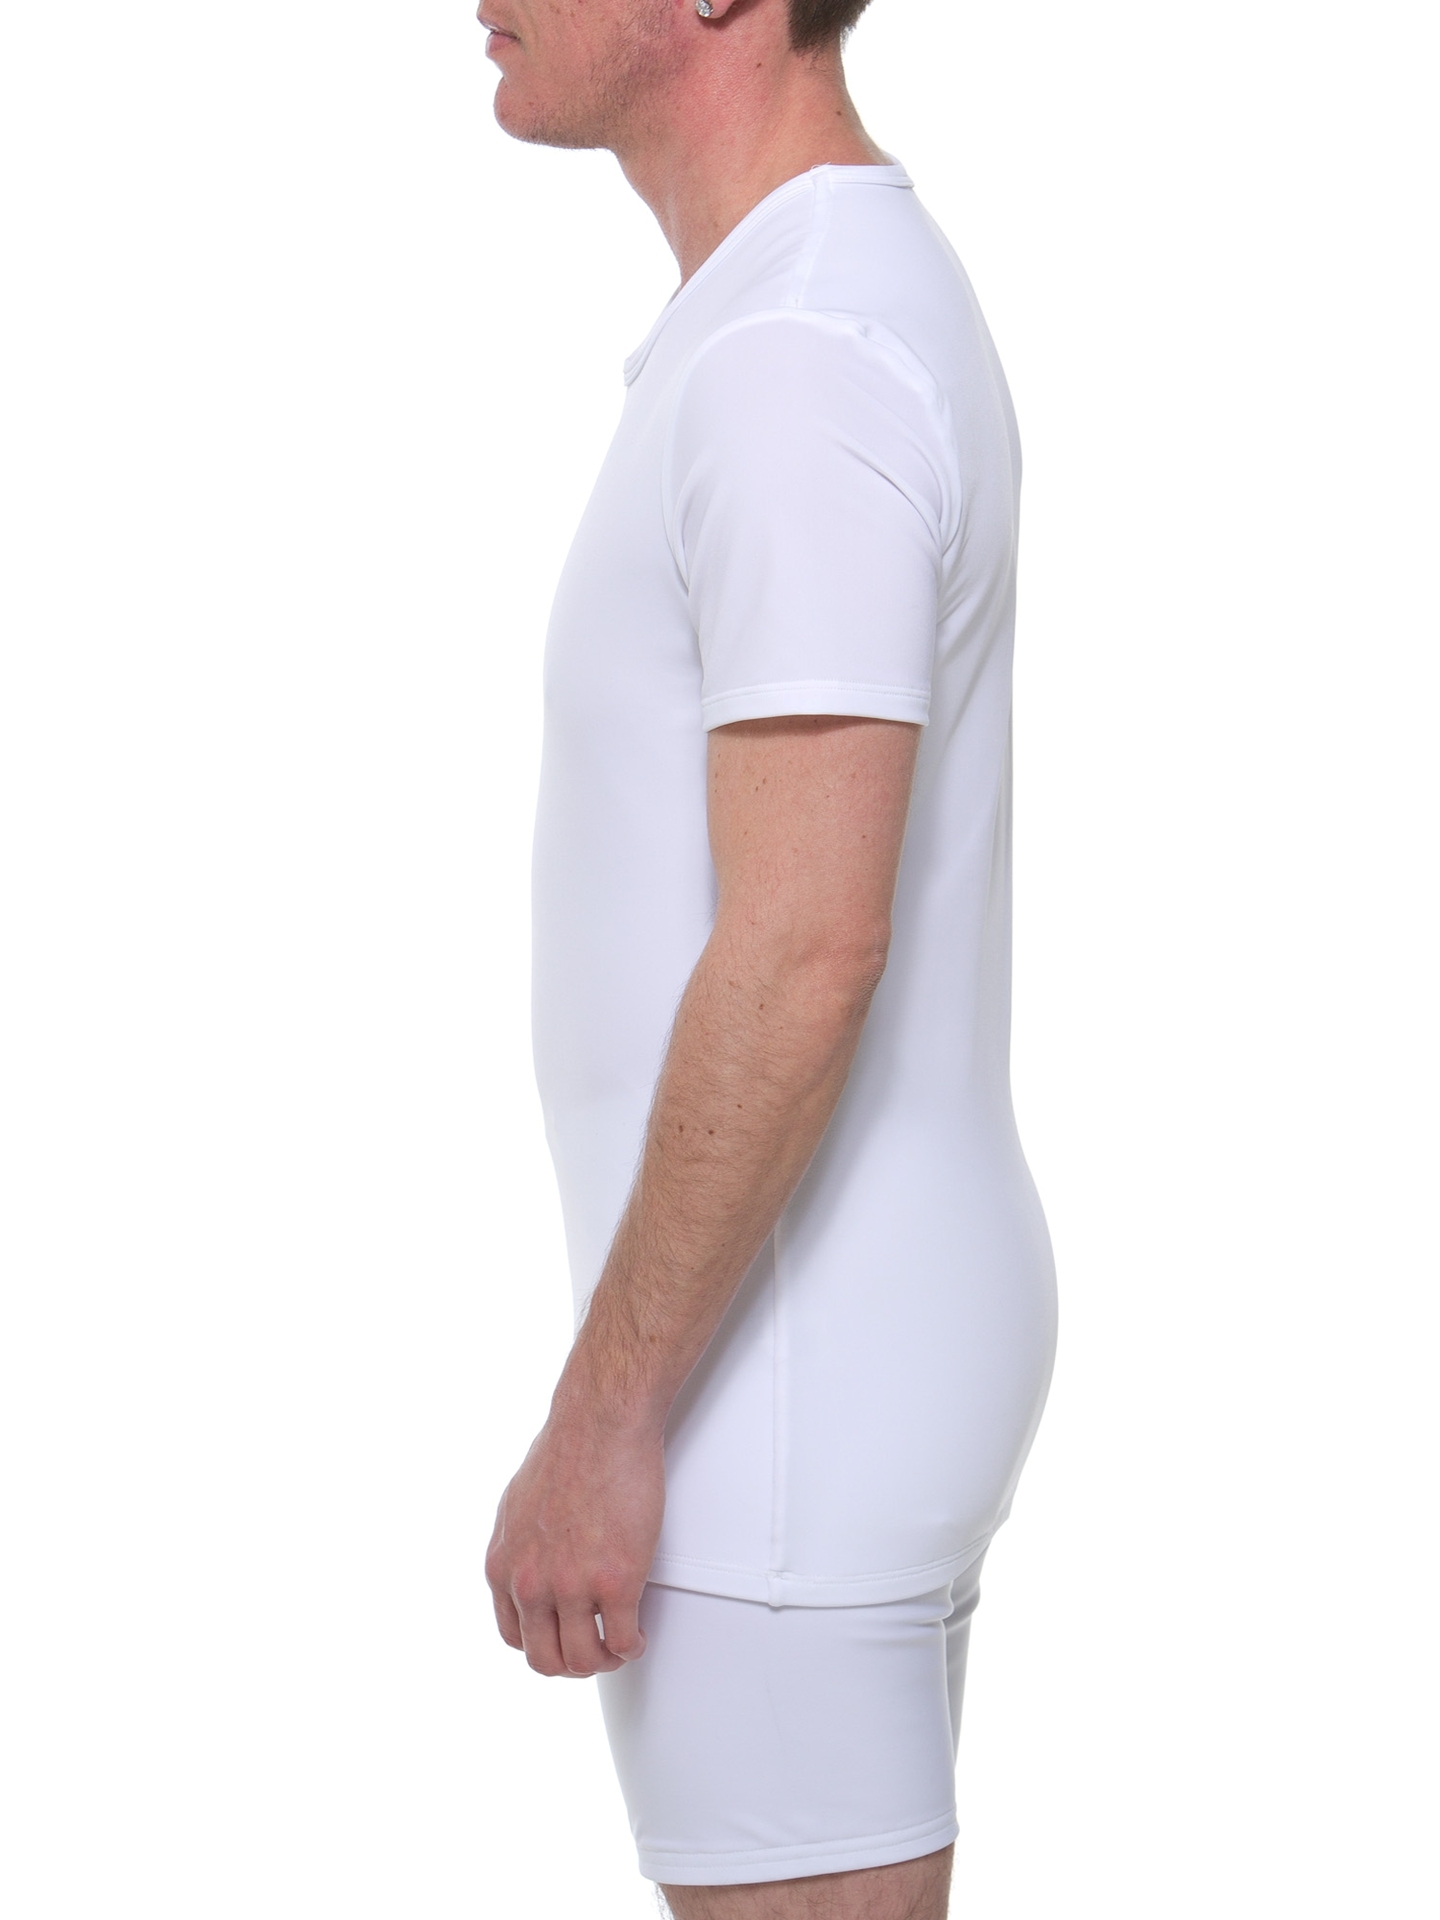 The FTM binder compression shirt is a chest binder that will flatten your chest in an instant